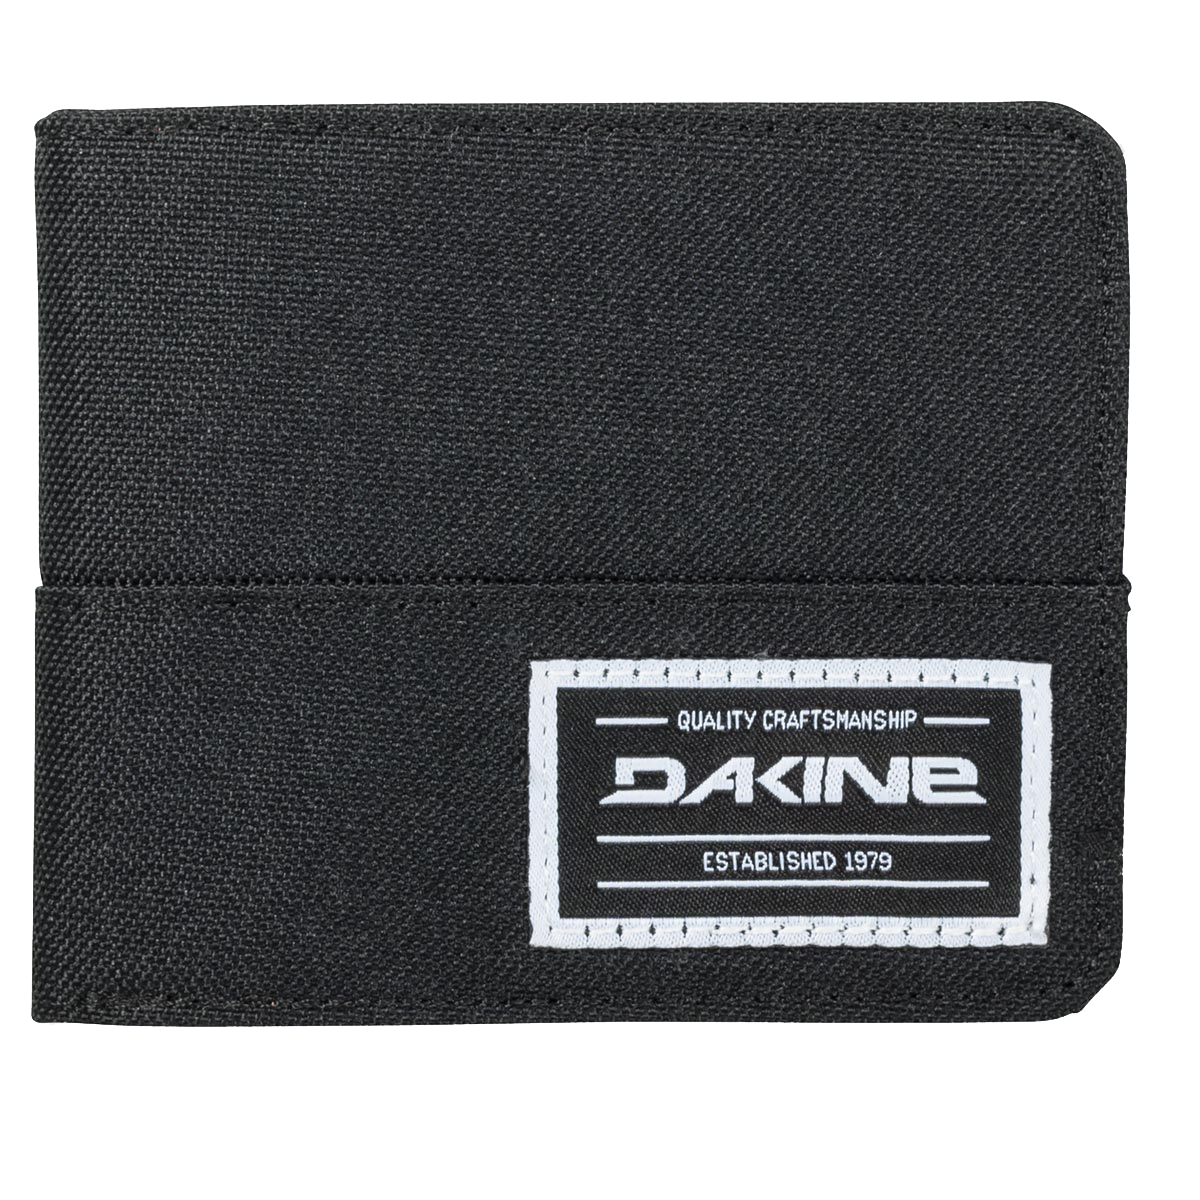 Dakine Payback Wallet - a stocking stuffer for mountain bikers